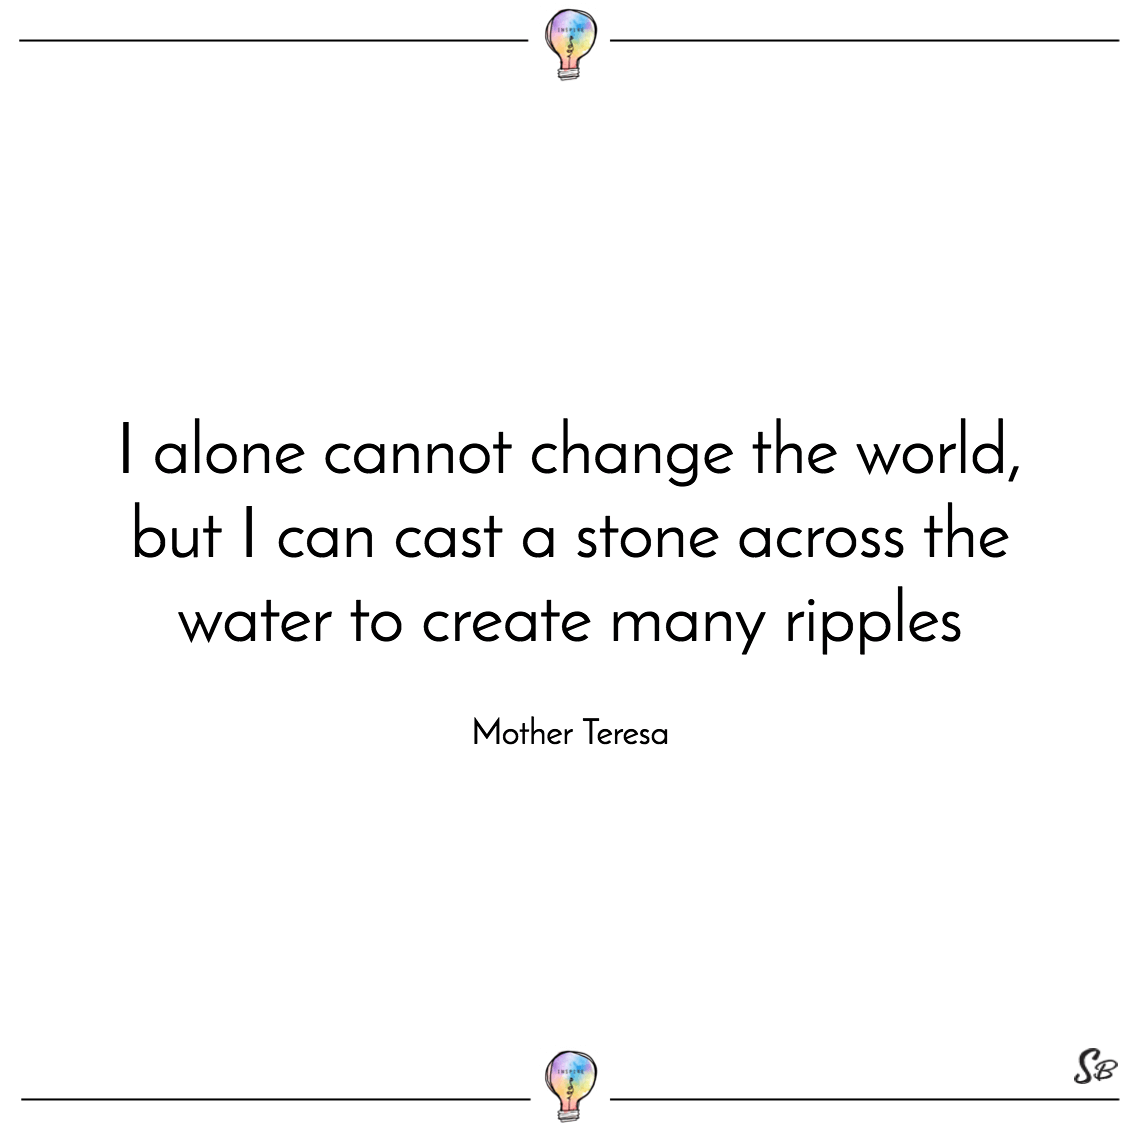 I alone cannot change the world, but i can cast a stone across the water to create many ripples mother teresa